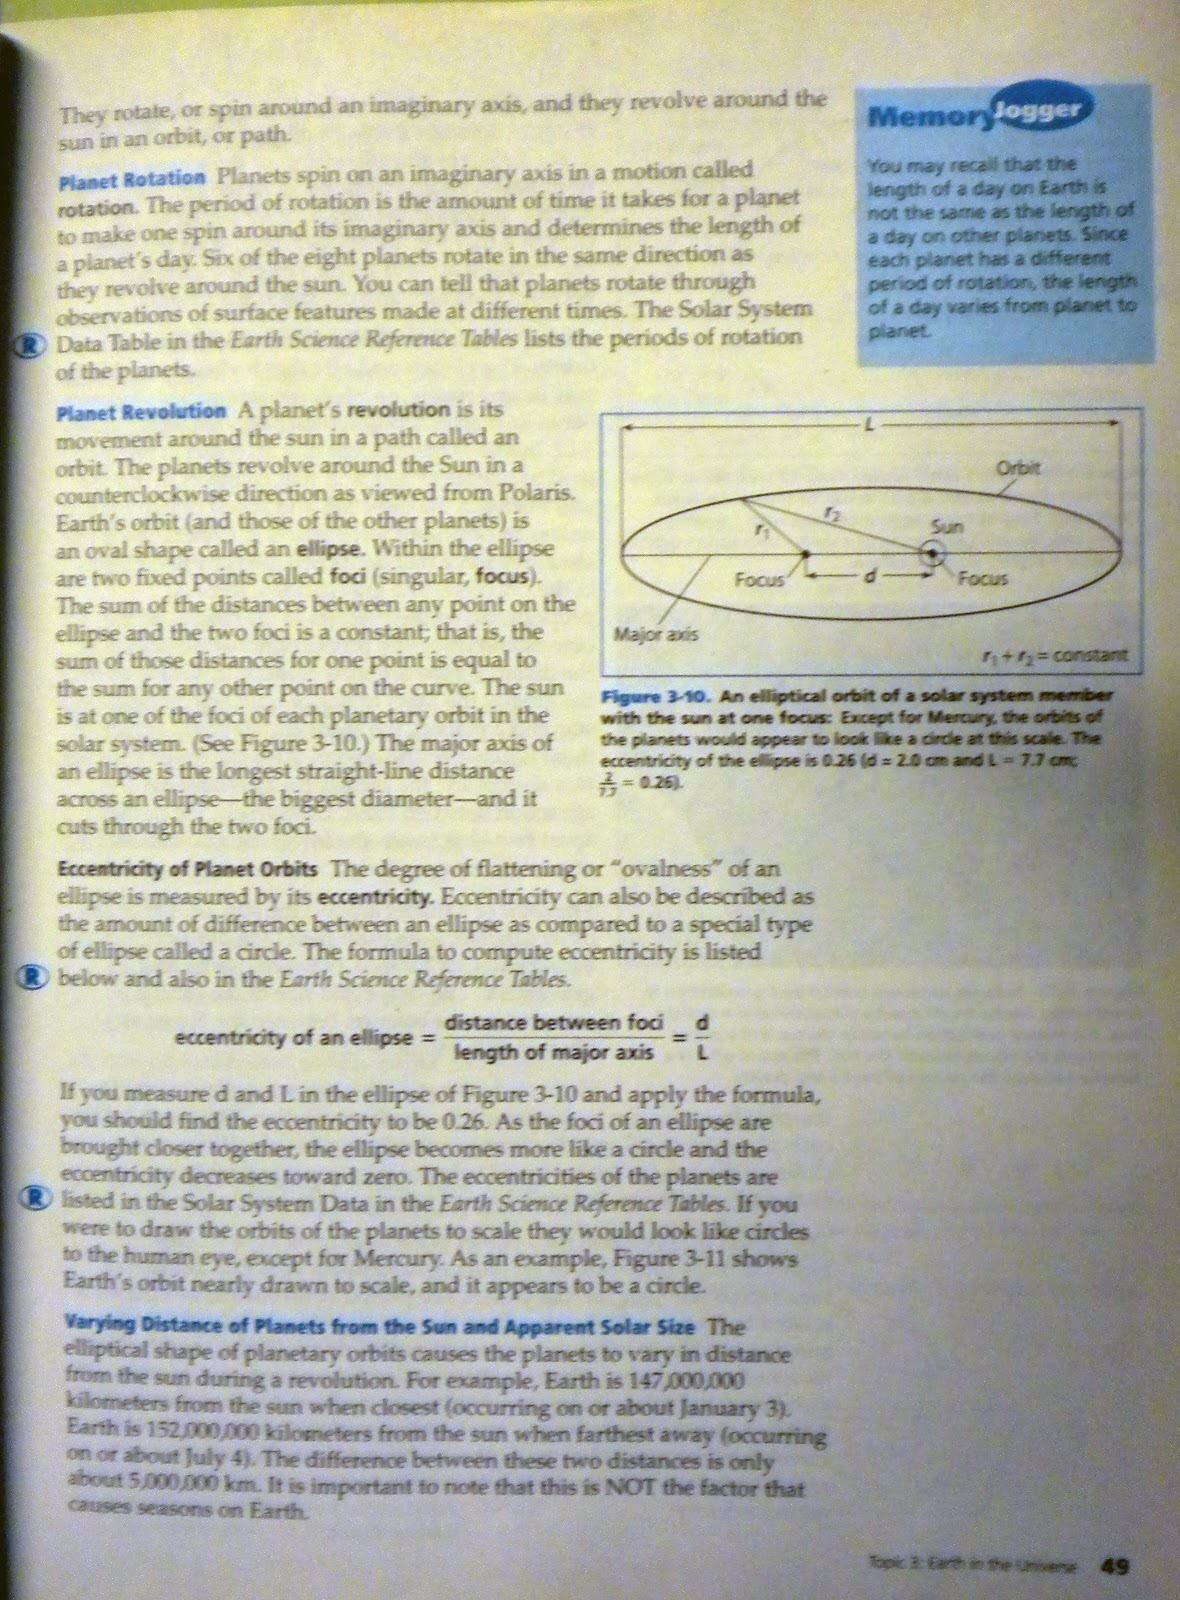 Earth Science Reference Topic3 Astronomy Questions 1 29 Amp 30 50